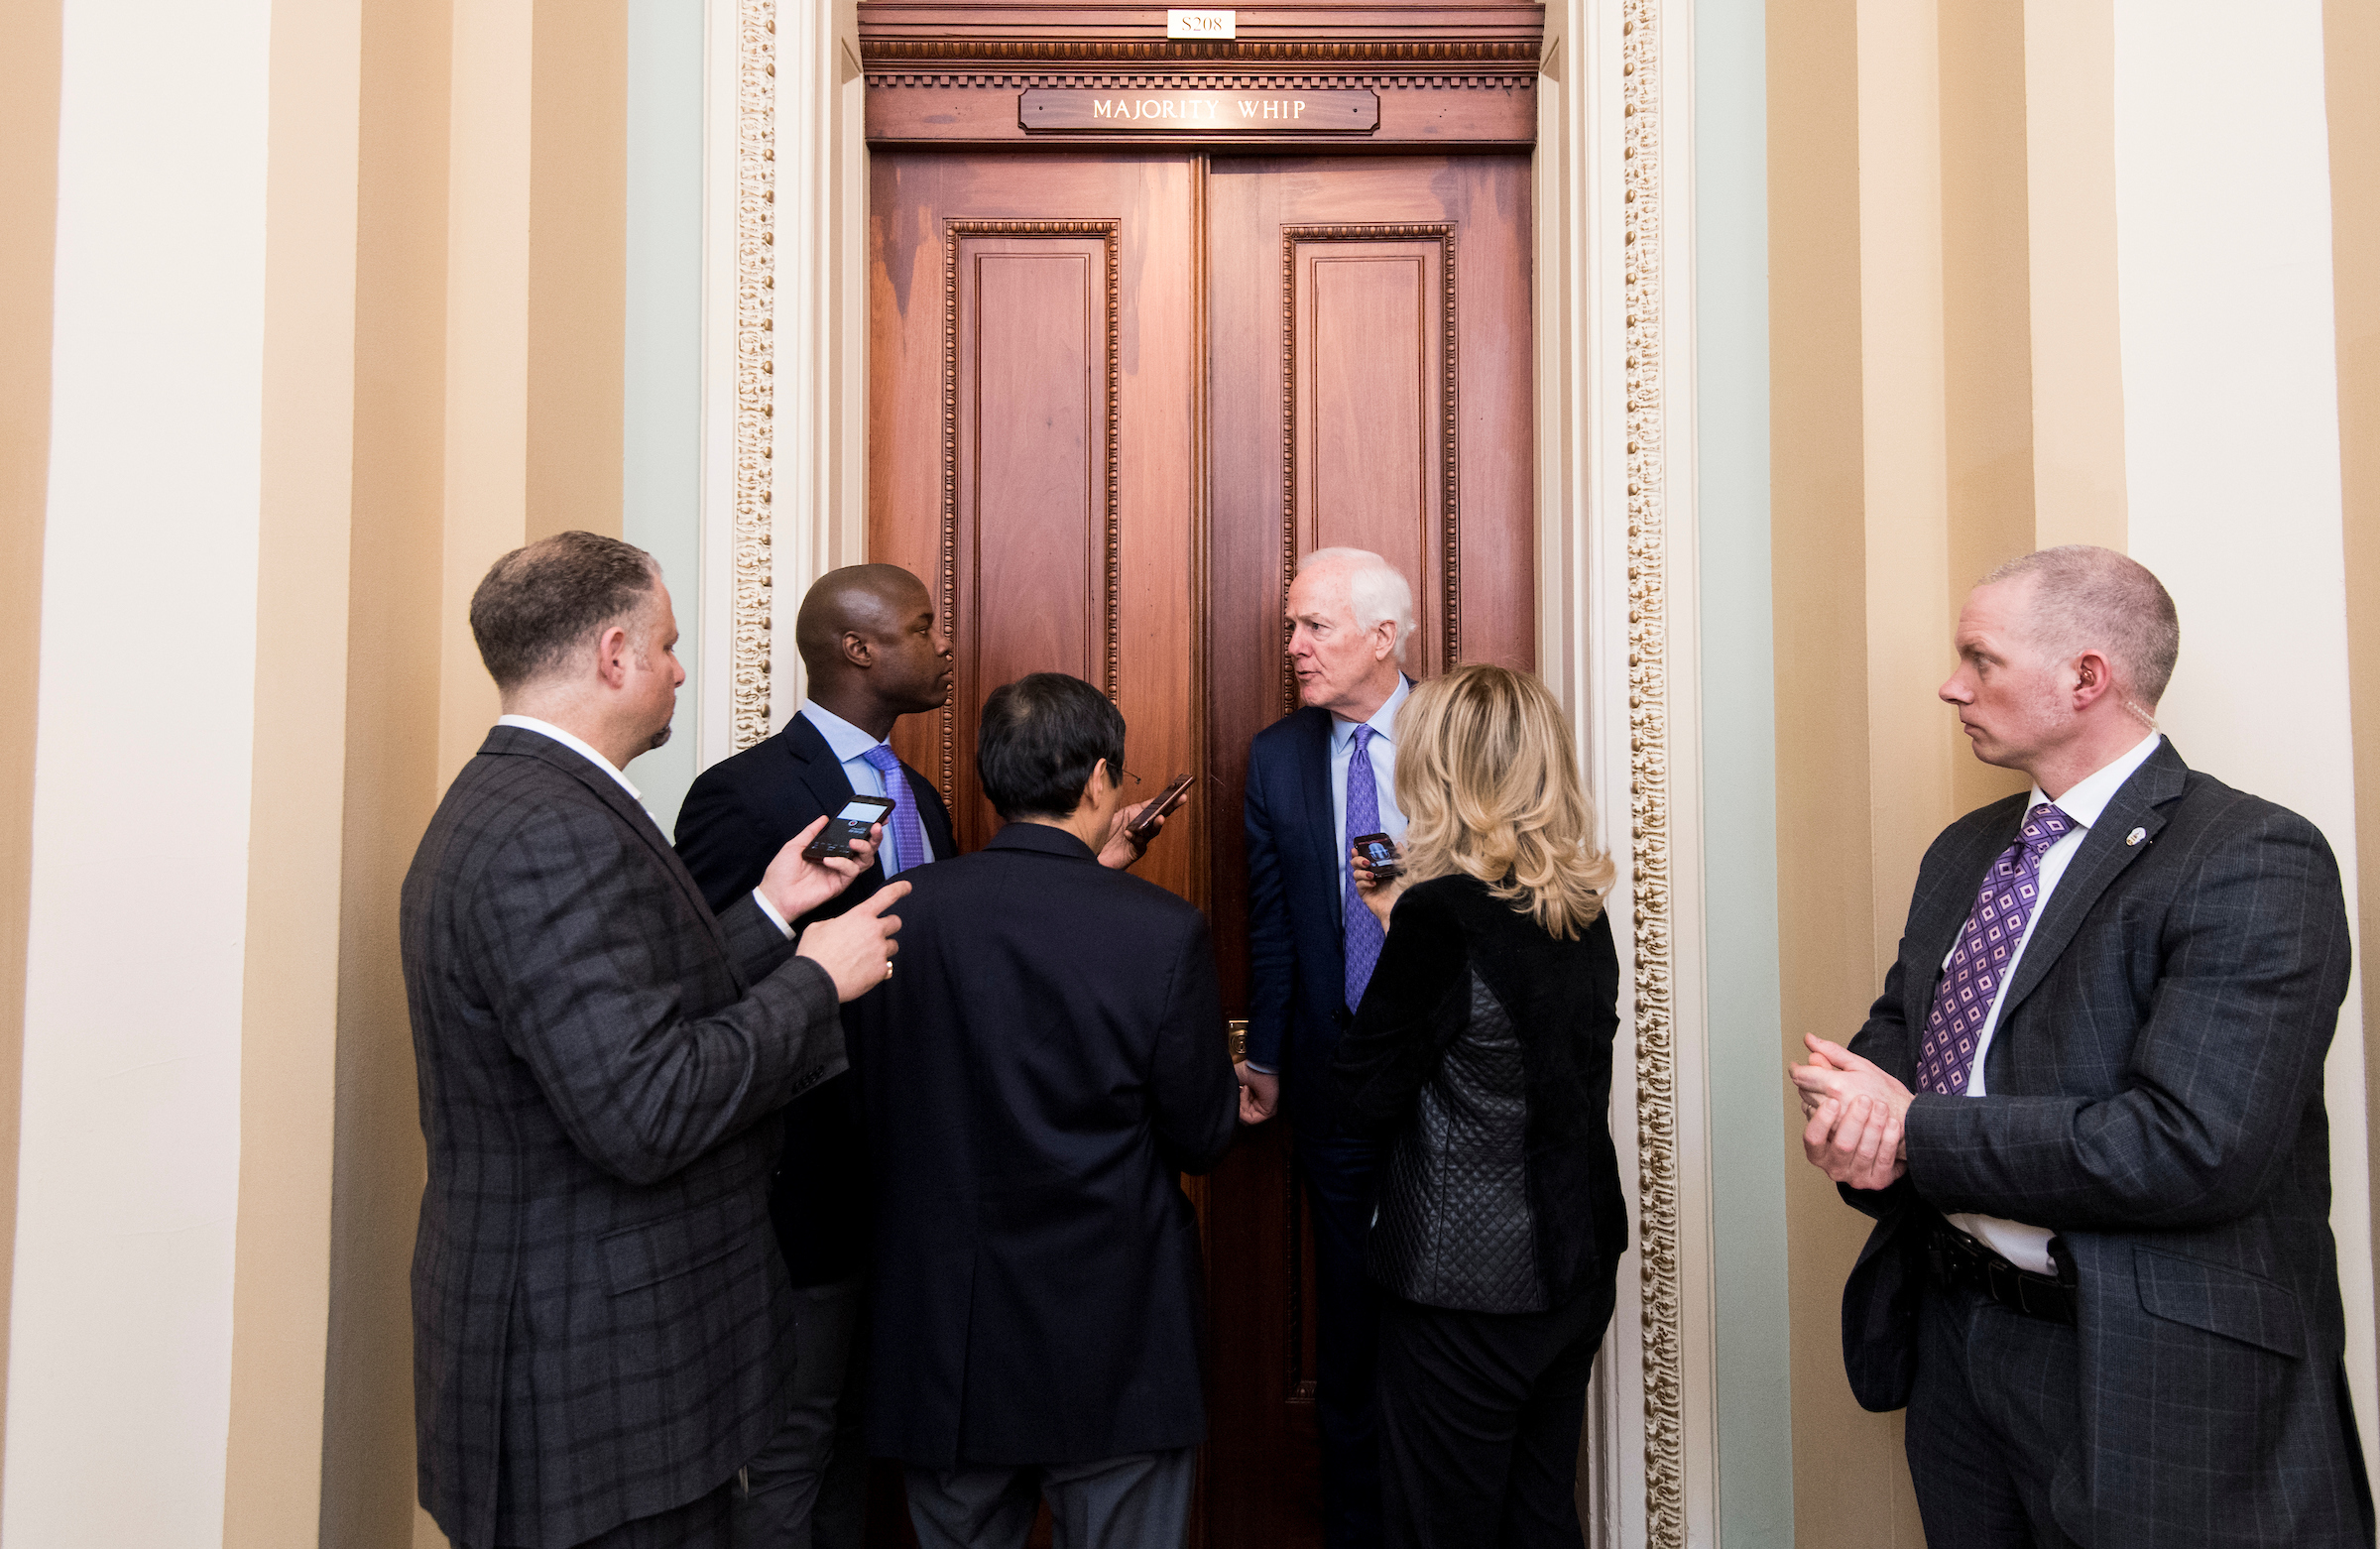 : Sen. John Cornyn, R-Texas, speaks with reporters outside of his office in the Capitol on Wednesday, Feb. 28, 2018. (Photo By Bill Clark/CQ Roll Call)